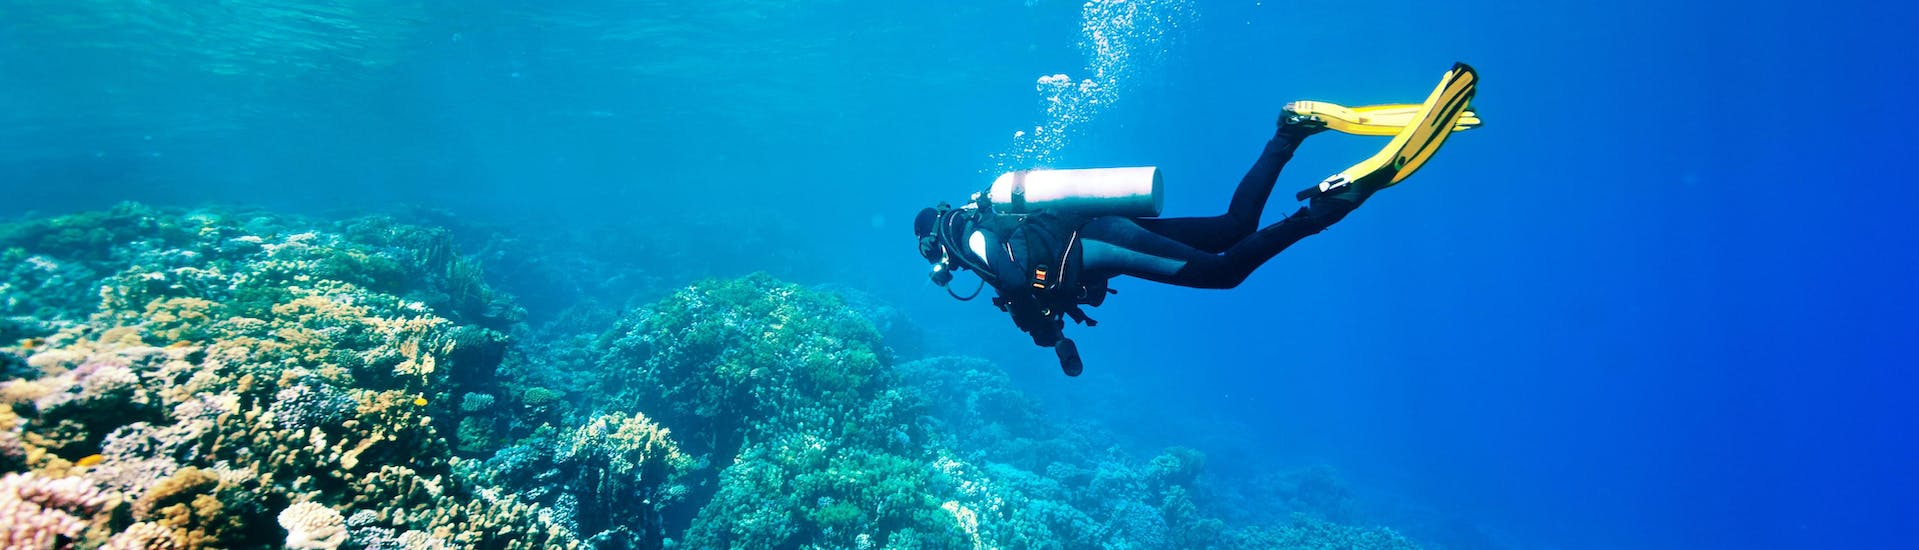 A scuba diver is exploring a reef while scuba diving in the scuba diving destination of Fuerteventura.